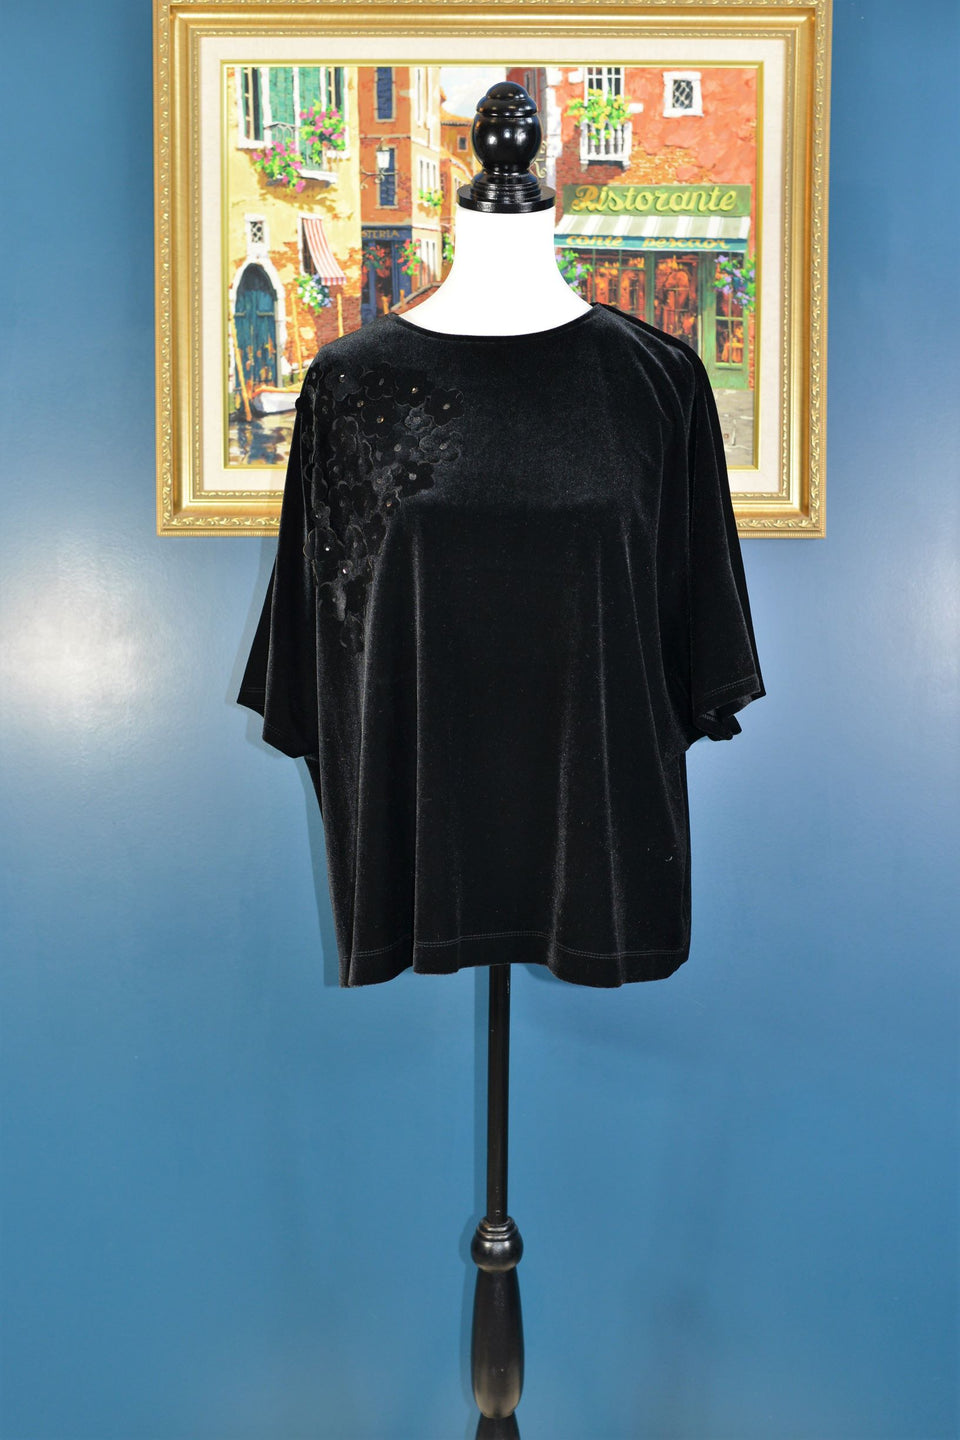 ROCHA John Rocha Women's Black Velour Top with Floral Motif, Size 10. Pre-loved.